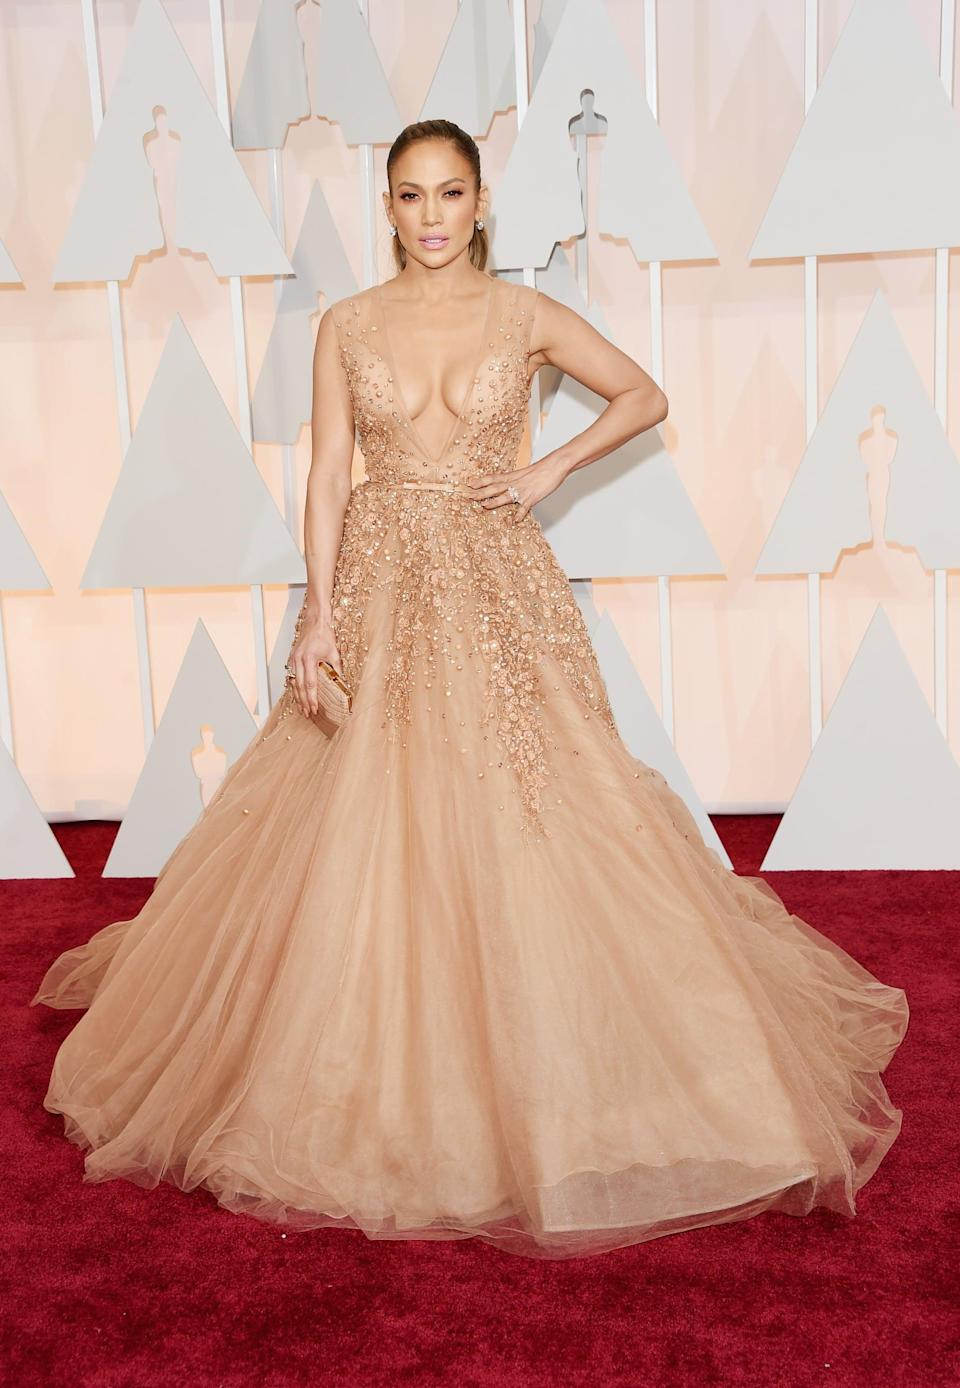 <p>The singer and actress turned heads in a blush-colored tulle dress from Elie Saab.</p>